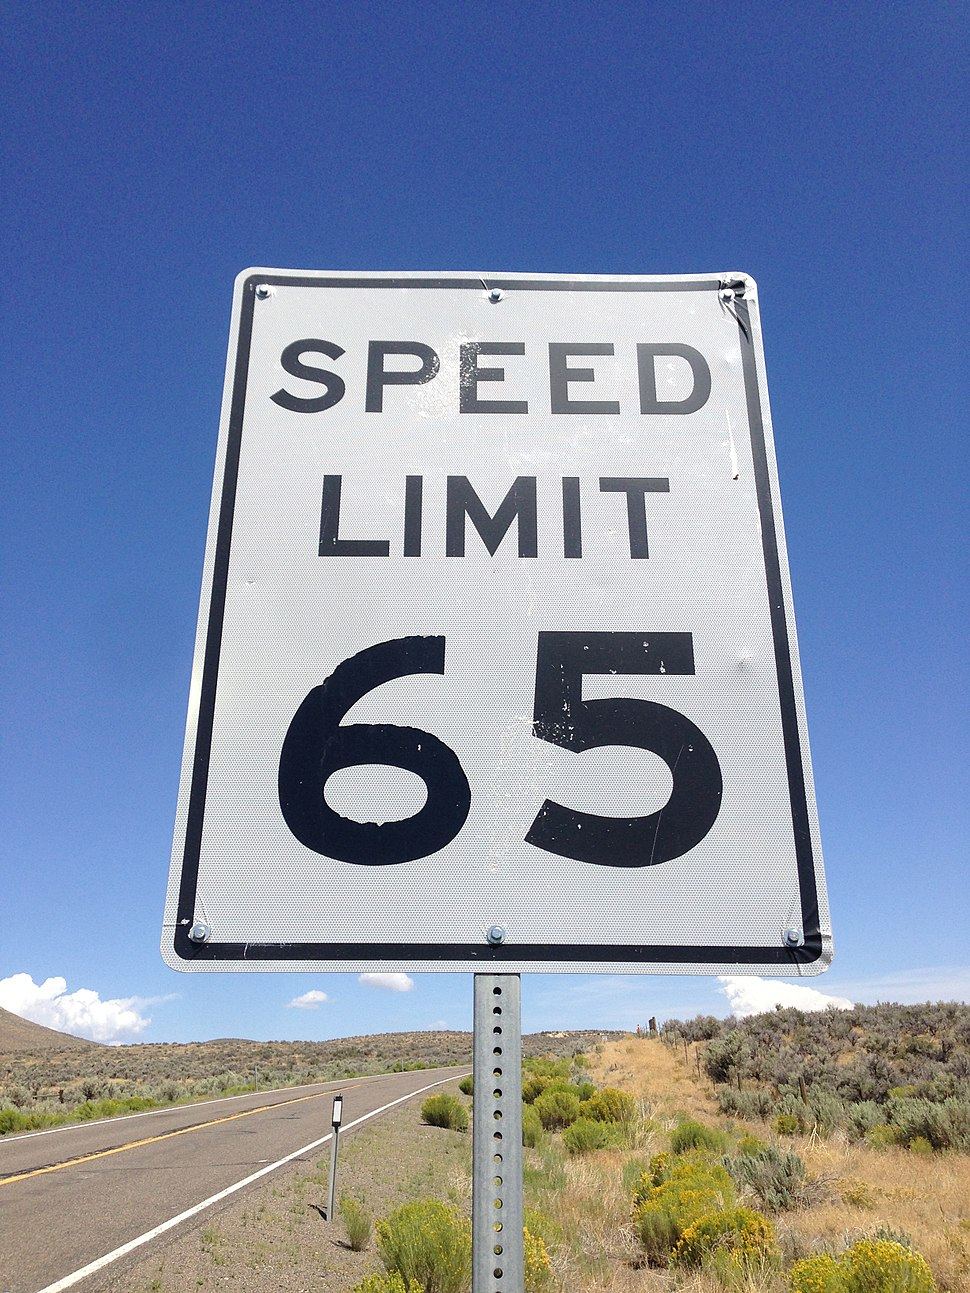 2014-08-19 11 59 11 Speed limit 65 miles per hour sign along northbound Nevada State Route 225 (Mountain City Highway) about 10.9 miles north of Nevada State Route 535 (Idaho Street) in Elko County, Nevada